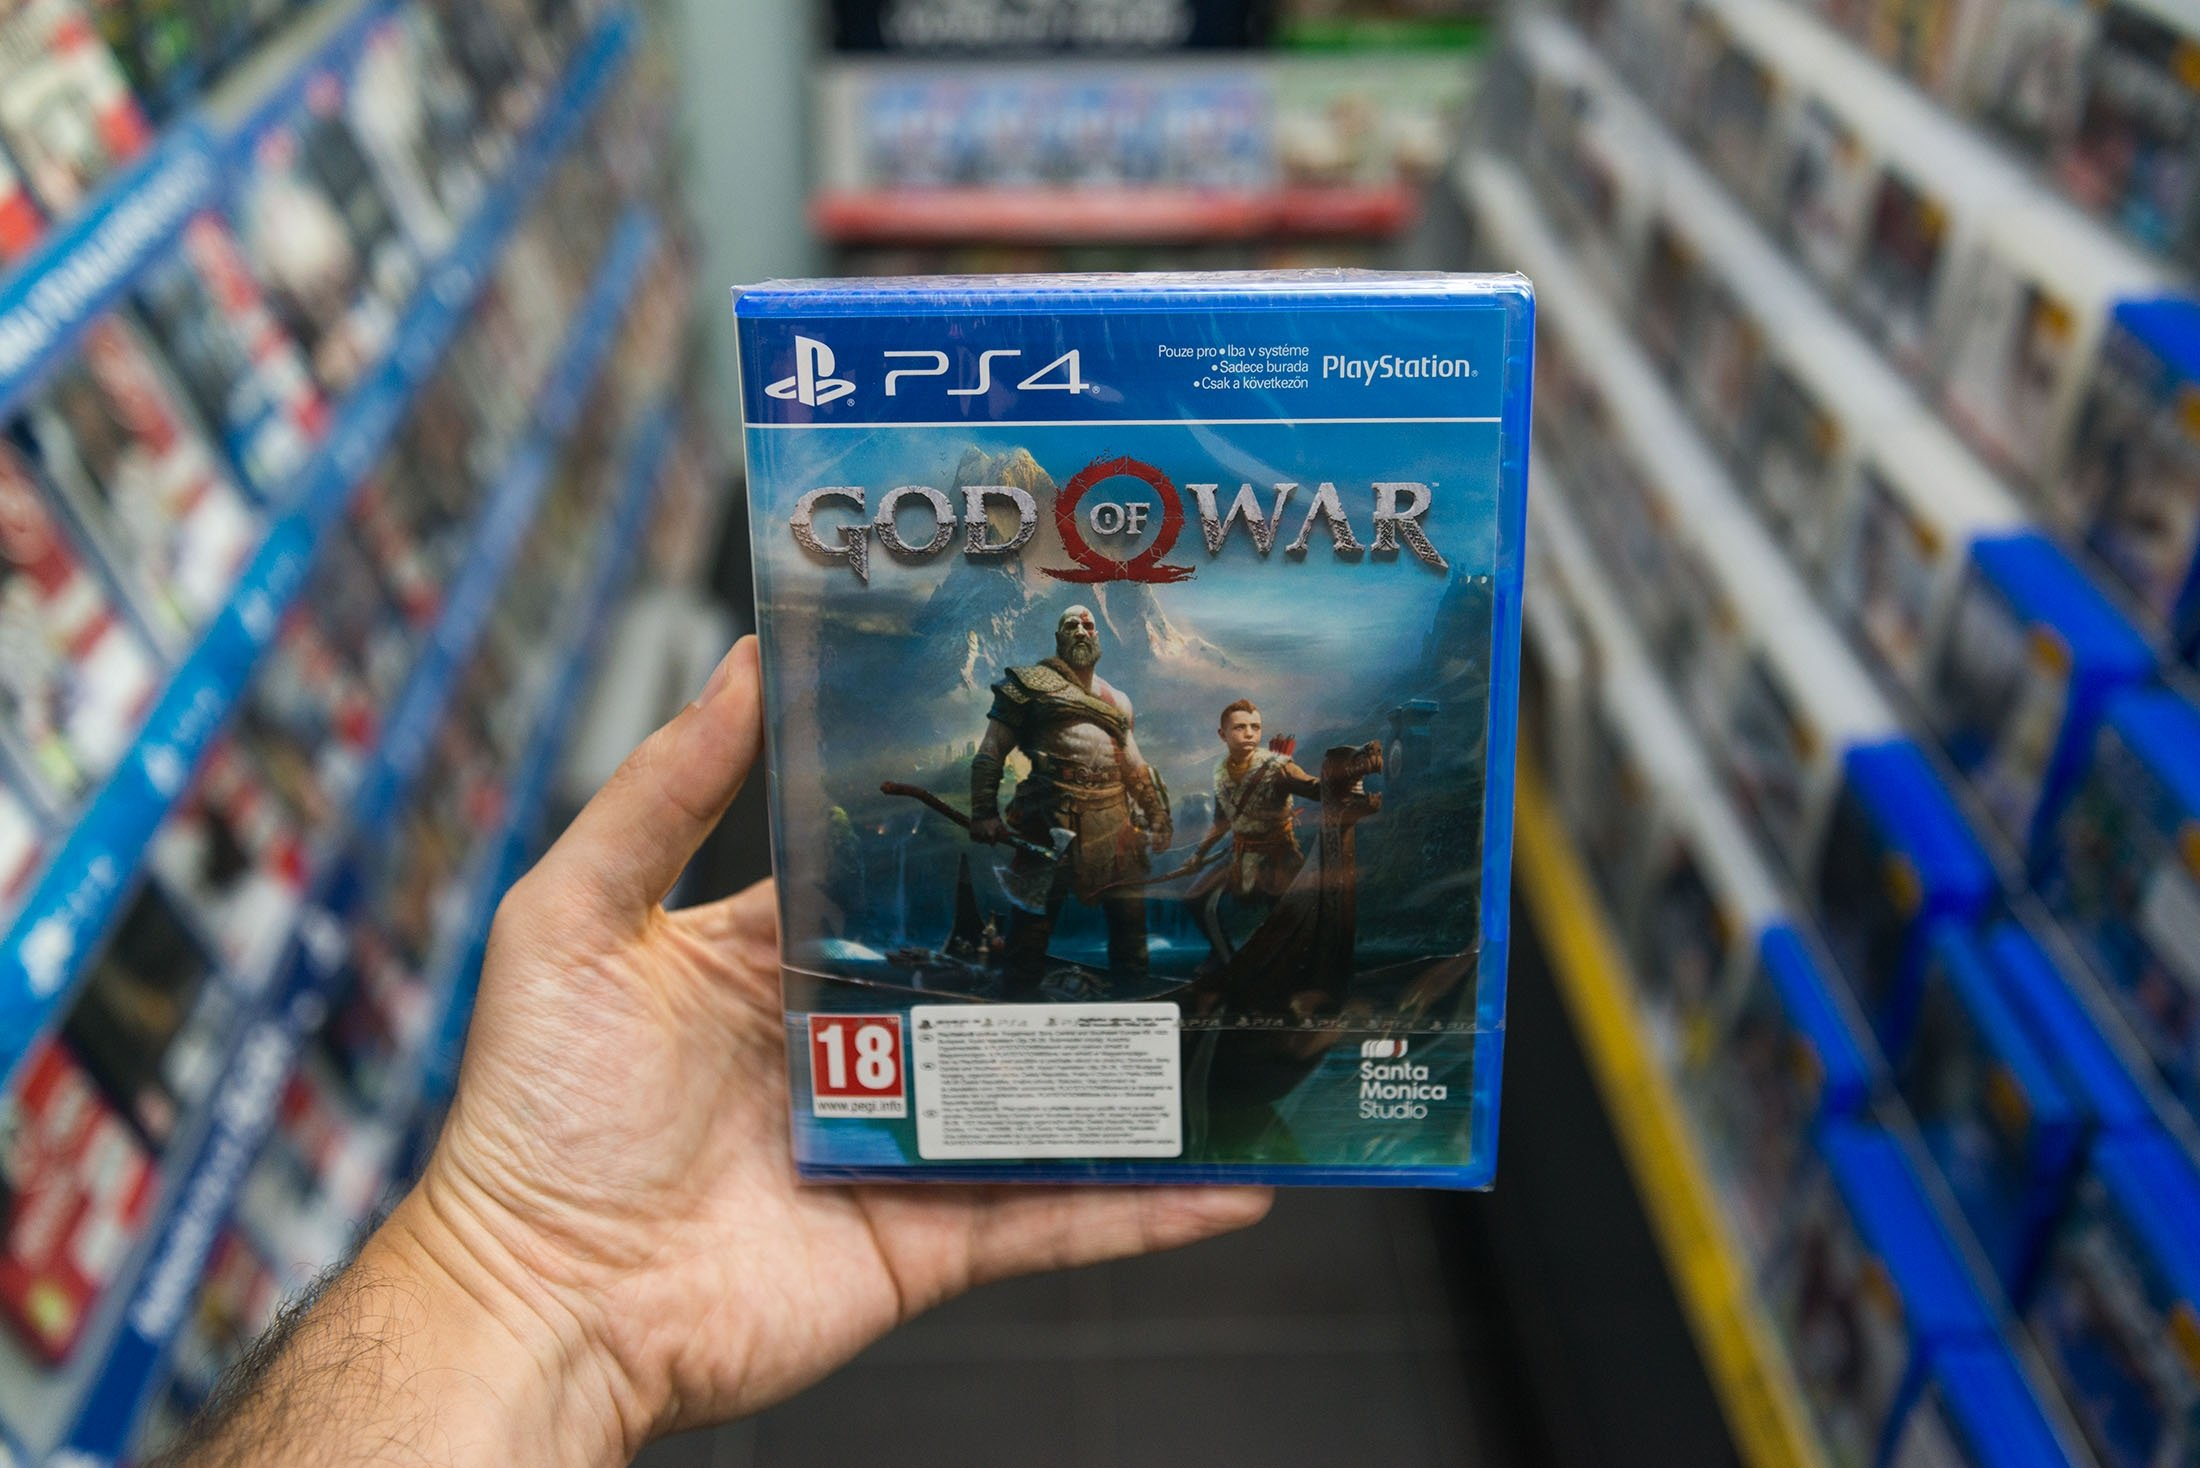 A man holds a God of War videogame for Sony Playstation 4 in a store in Bratislava, Slovakia, May 2018. (Shutterstock Photo)